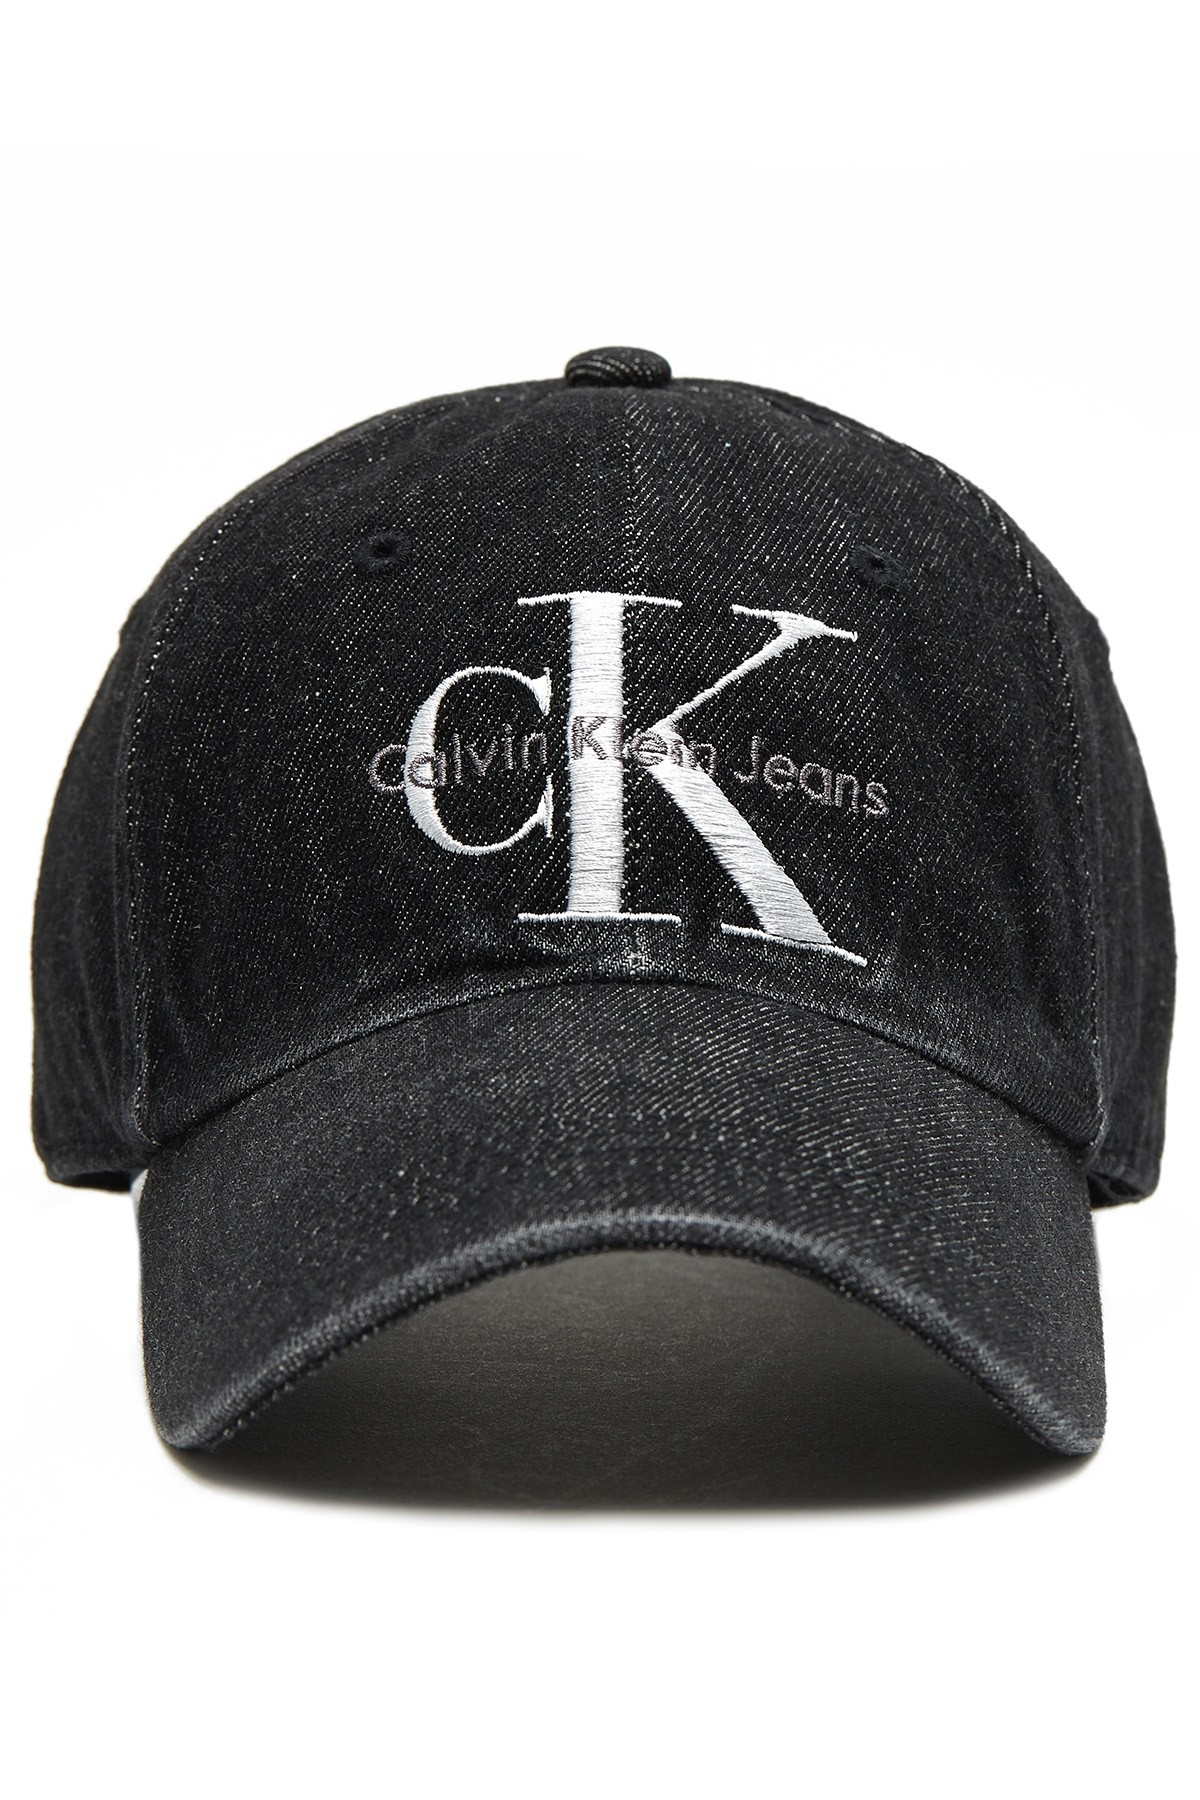 CALVIN KLEIN Baseball Cap Black Denim - 1Million Outfits 86722a53f66